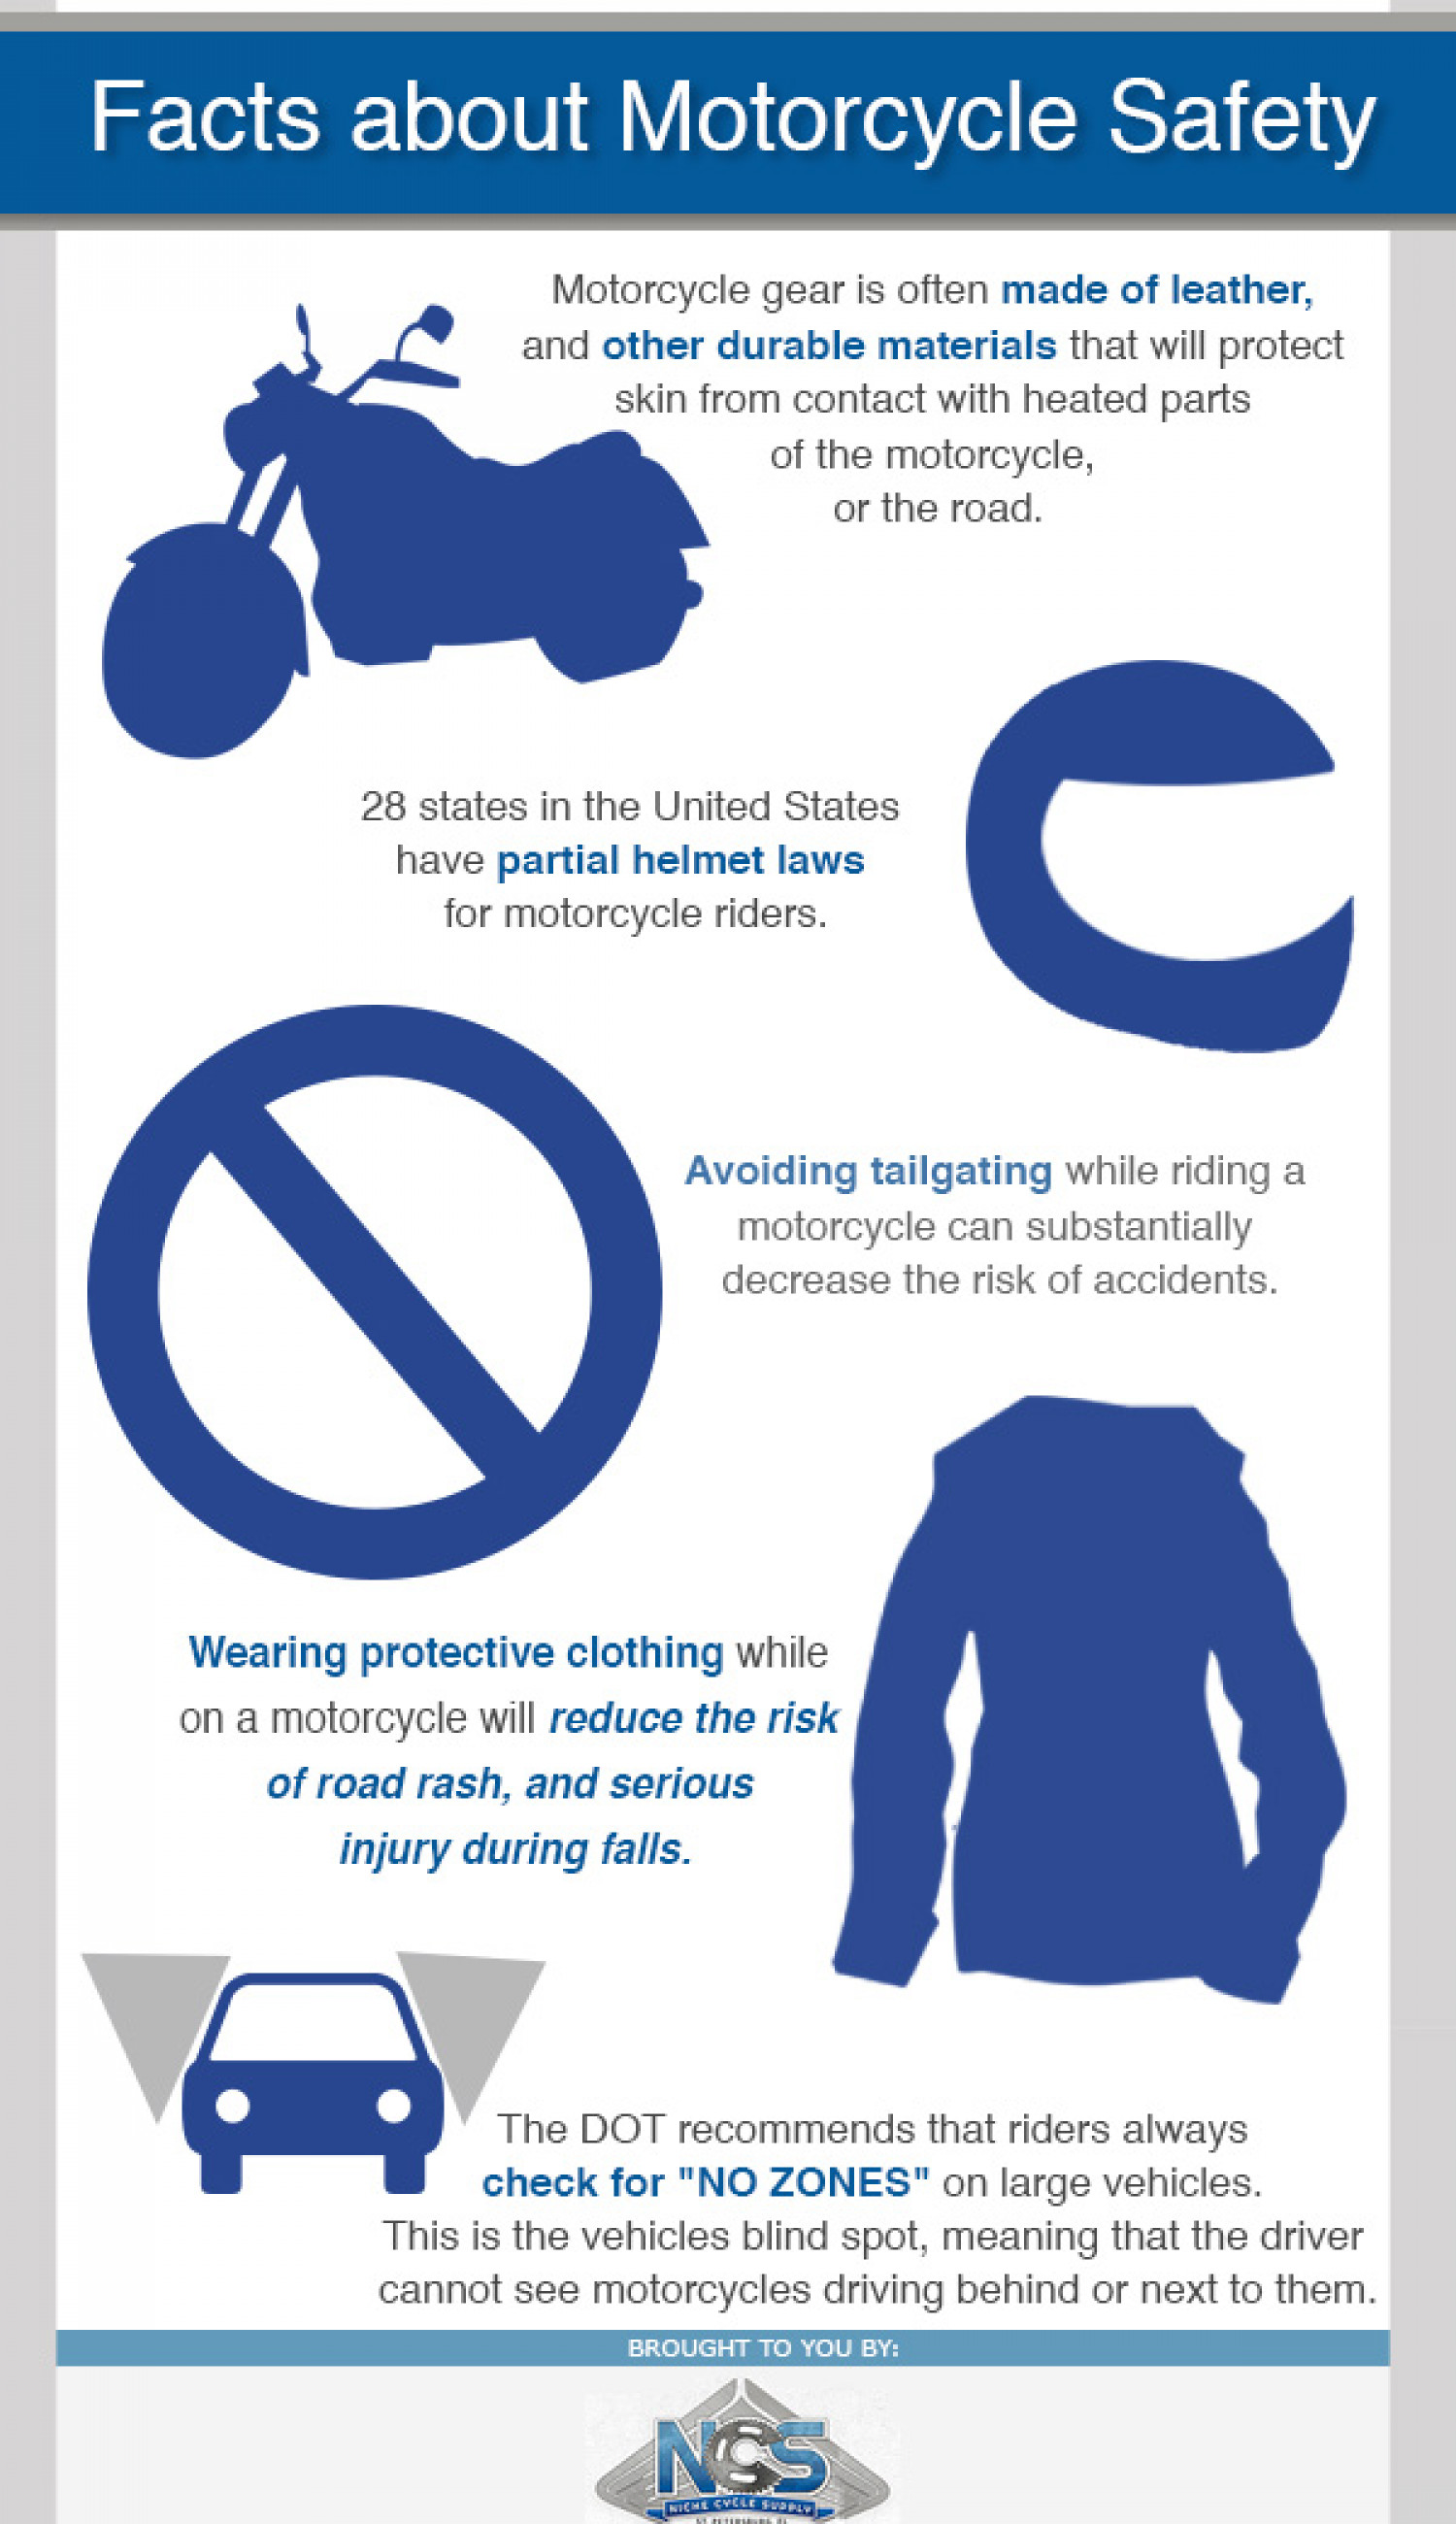 Facts About Motorcycle Safety Infographic